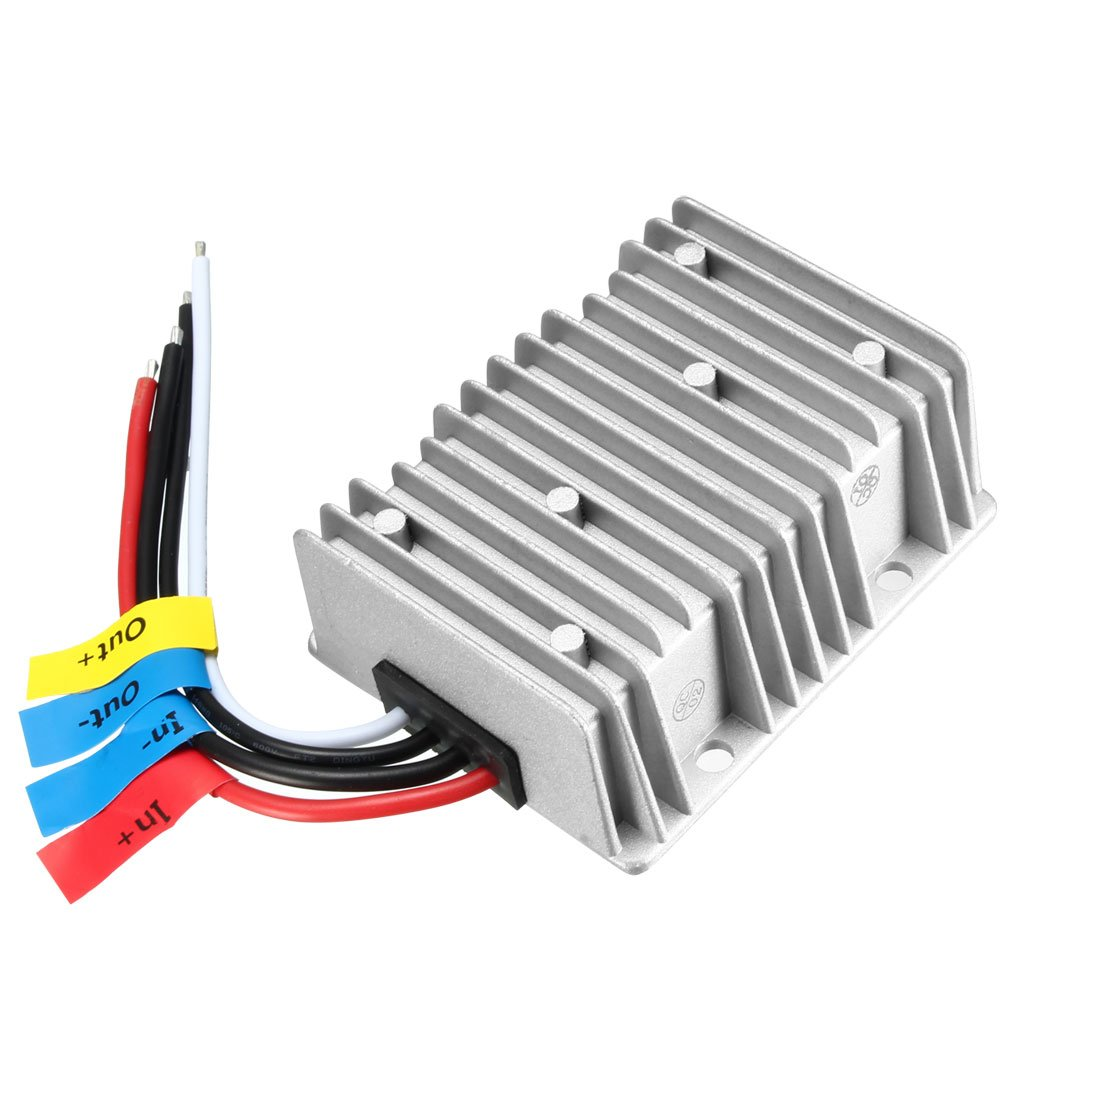 uxcell New BIG-Size Voltage Converter Regulator DC/DC DC 12V Step-up to DC 24V 15A 360W Boost Transformer Waterproof